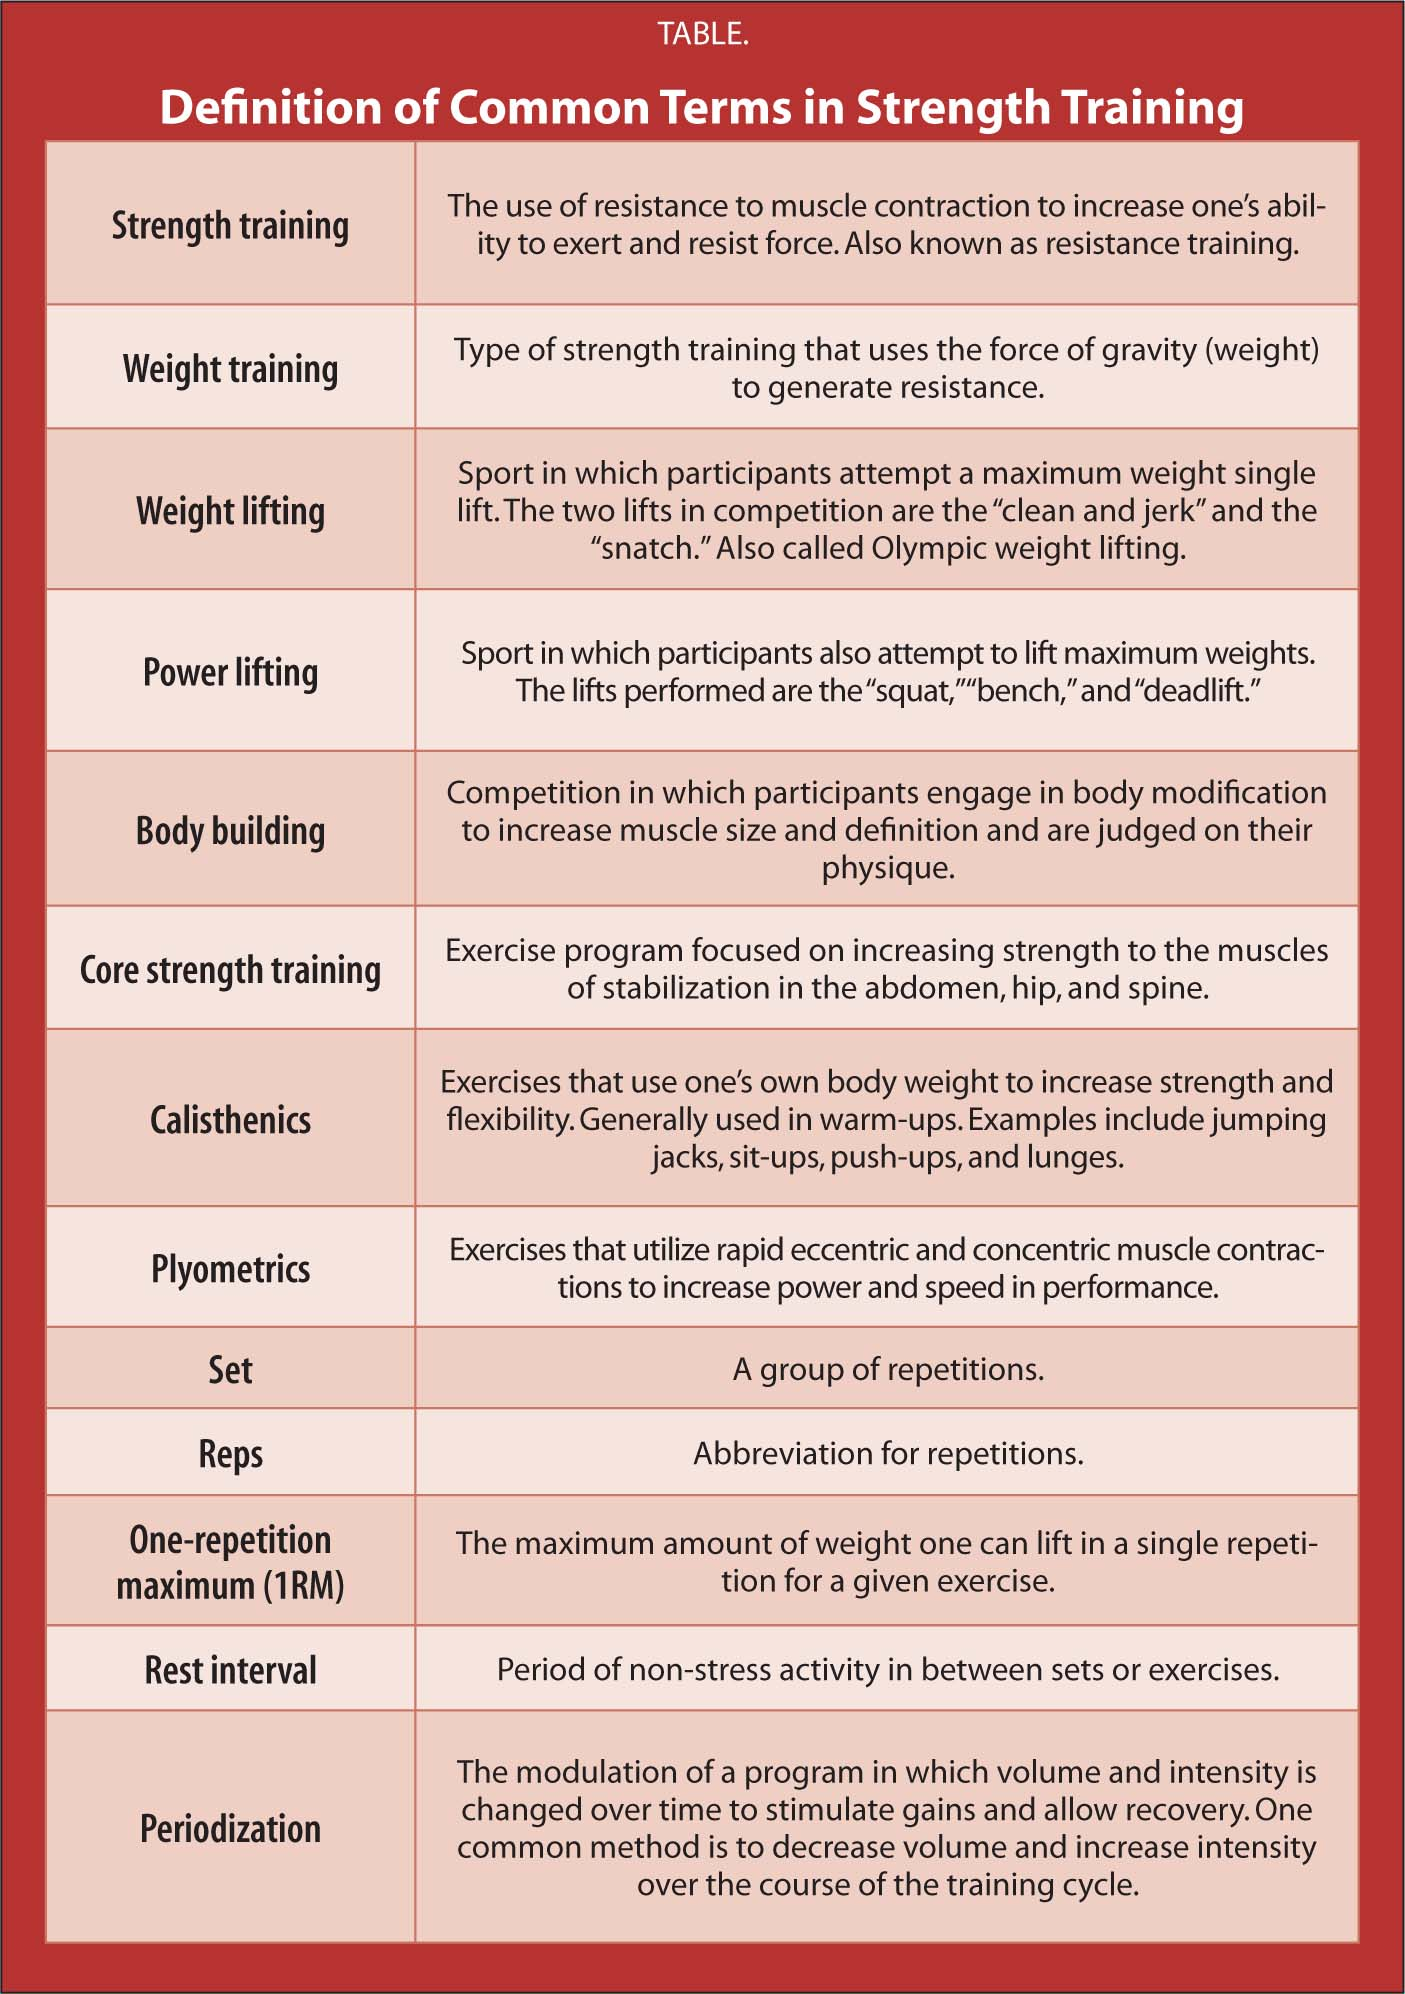 Definition of Common Terms in Strength Training